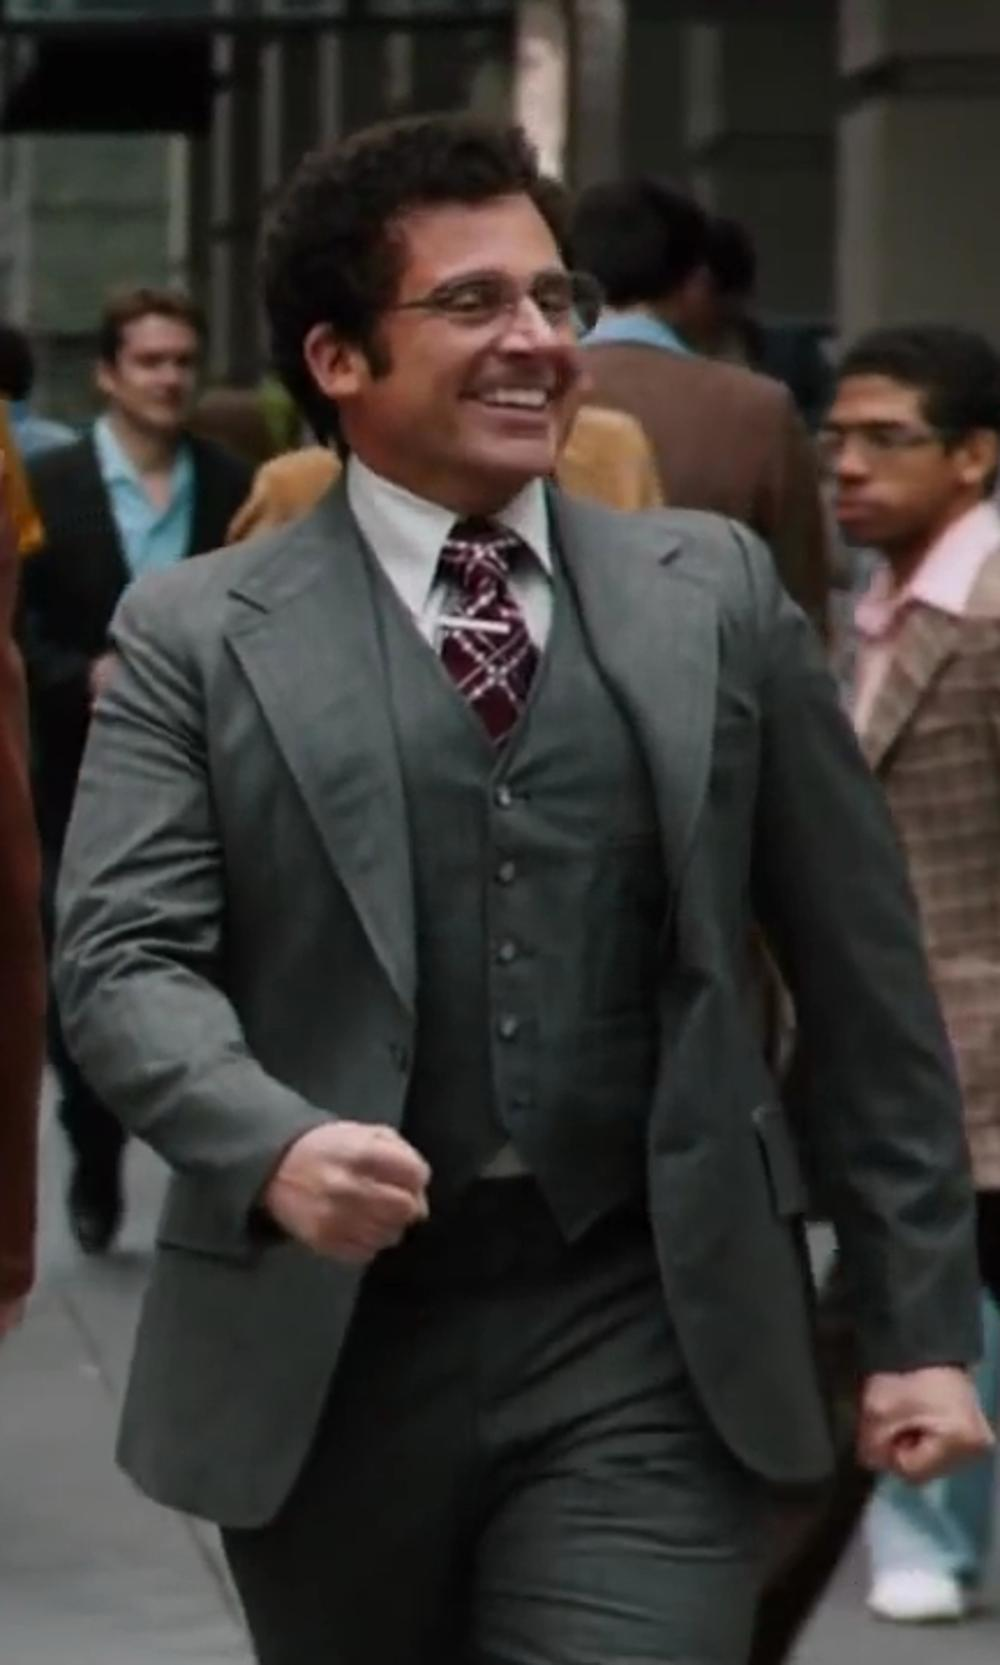 Steve Carell with Hugo Boss 'Hattrick' Trim Fit Three-Piece Suit in Anchorman 2: The Legend Continues